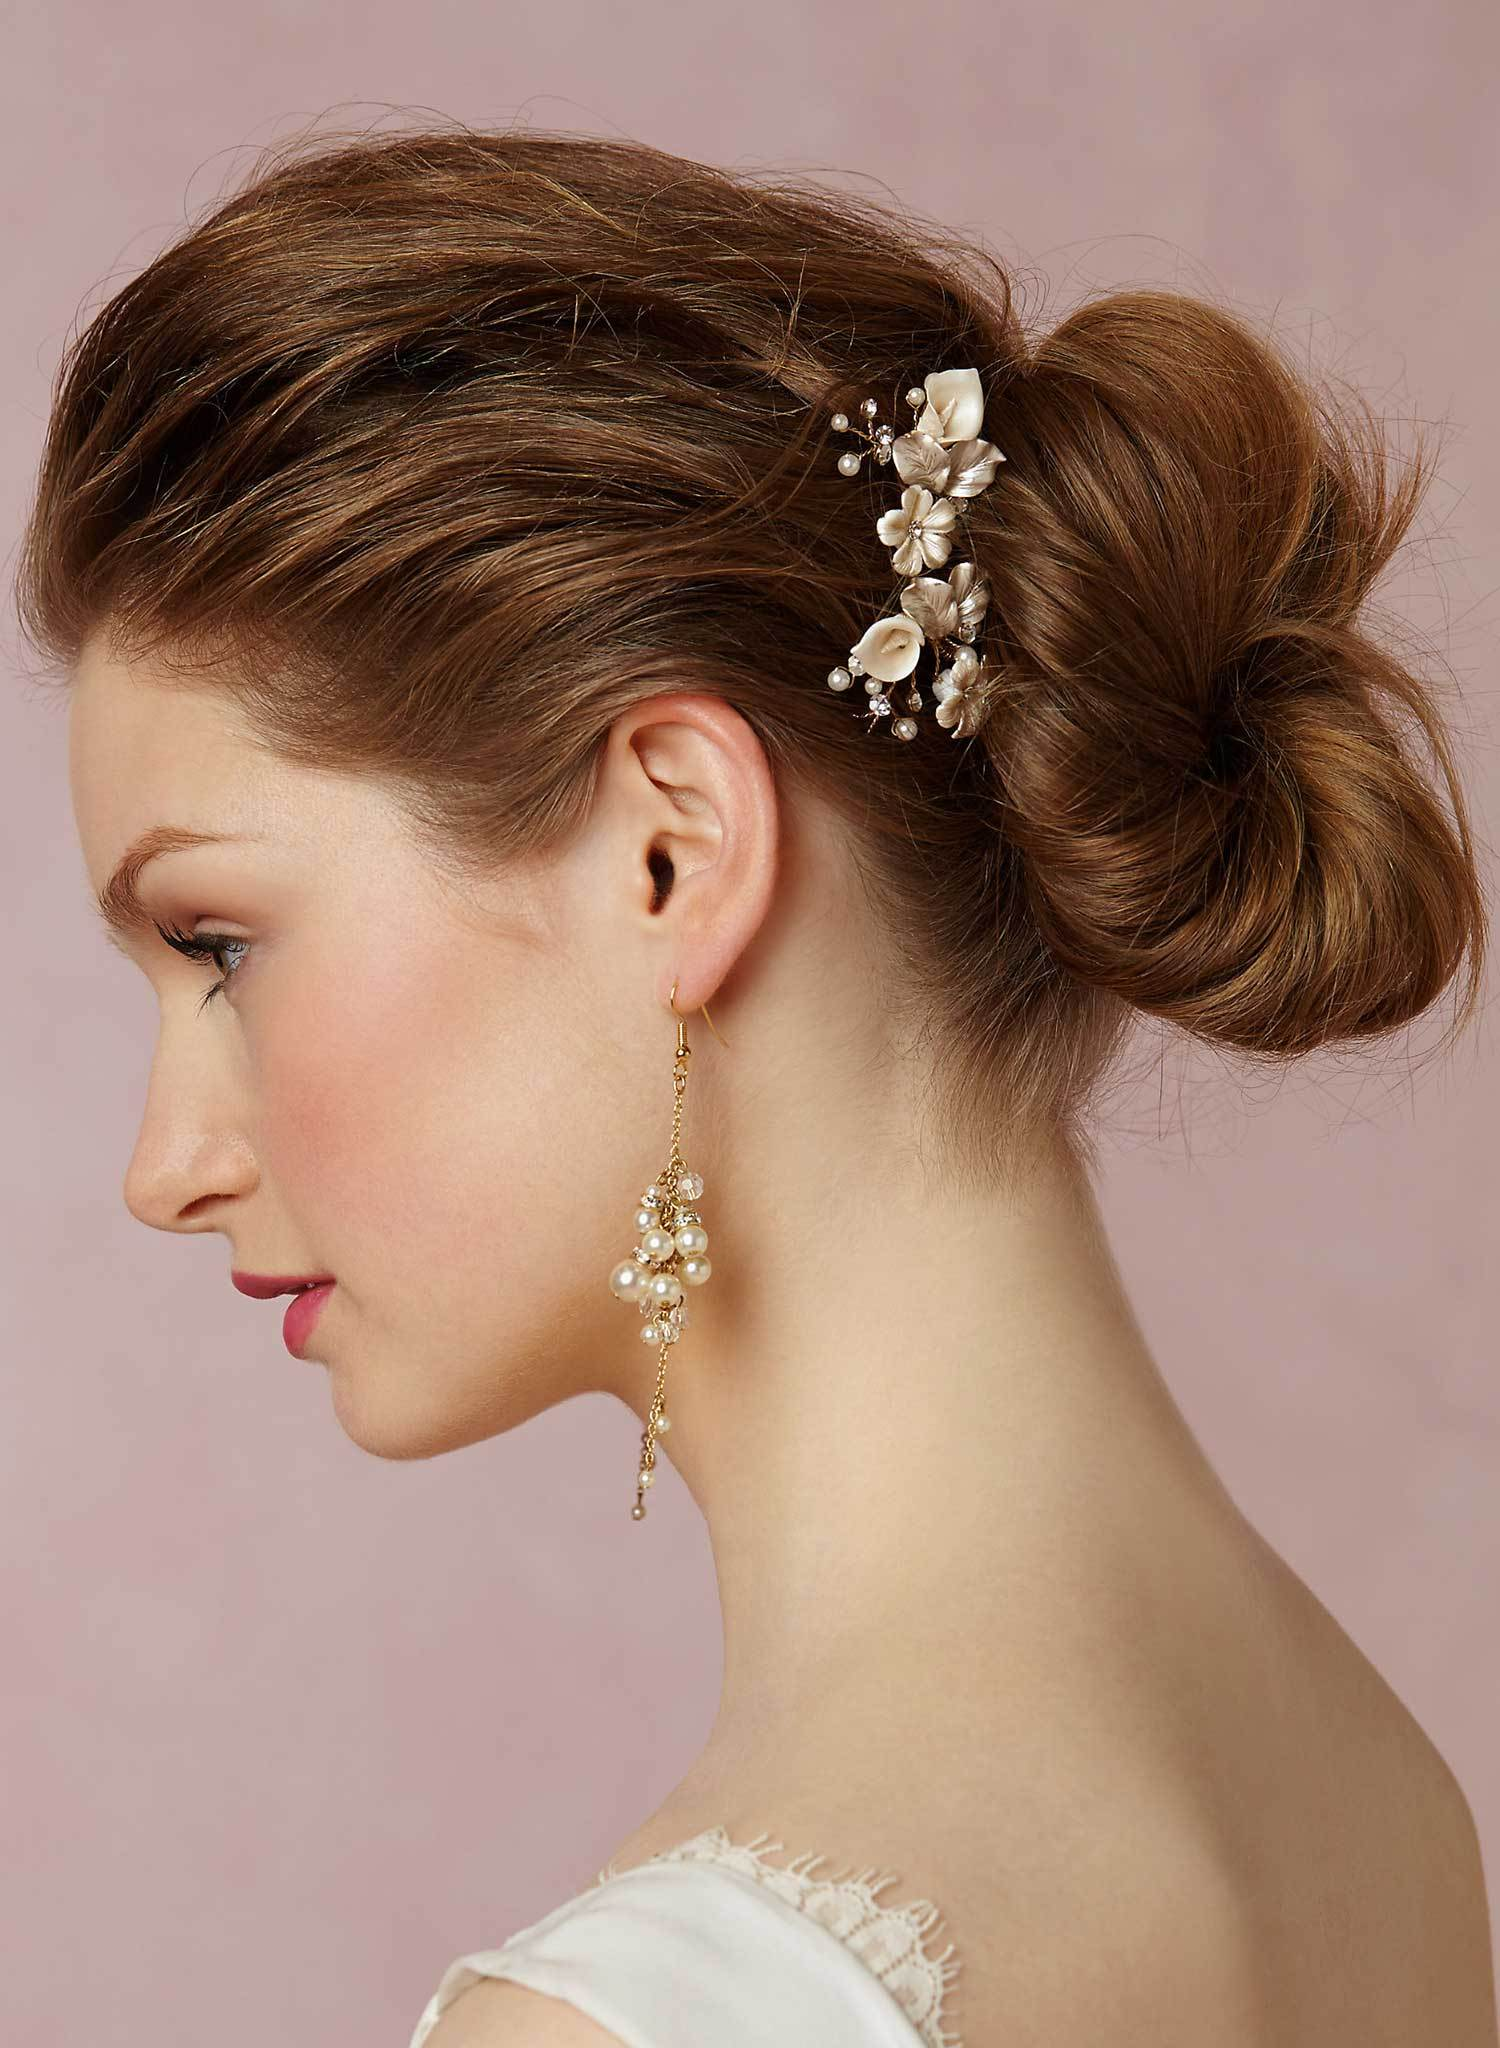 Petite floral and crystal hair pin pair - Style #567